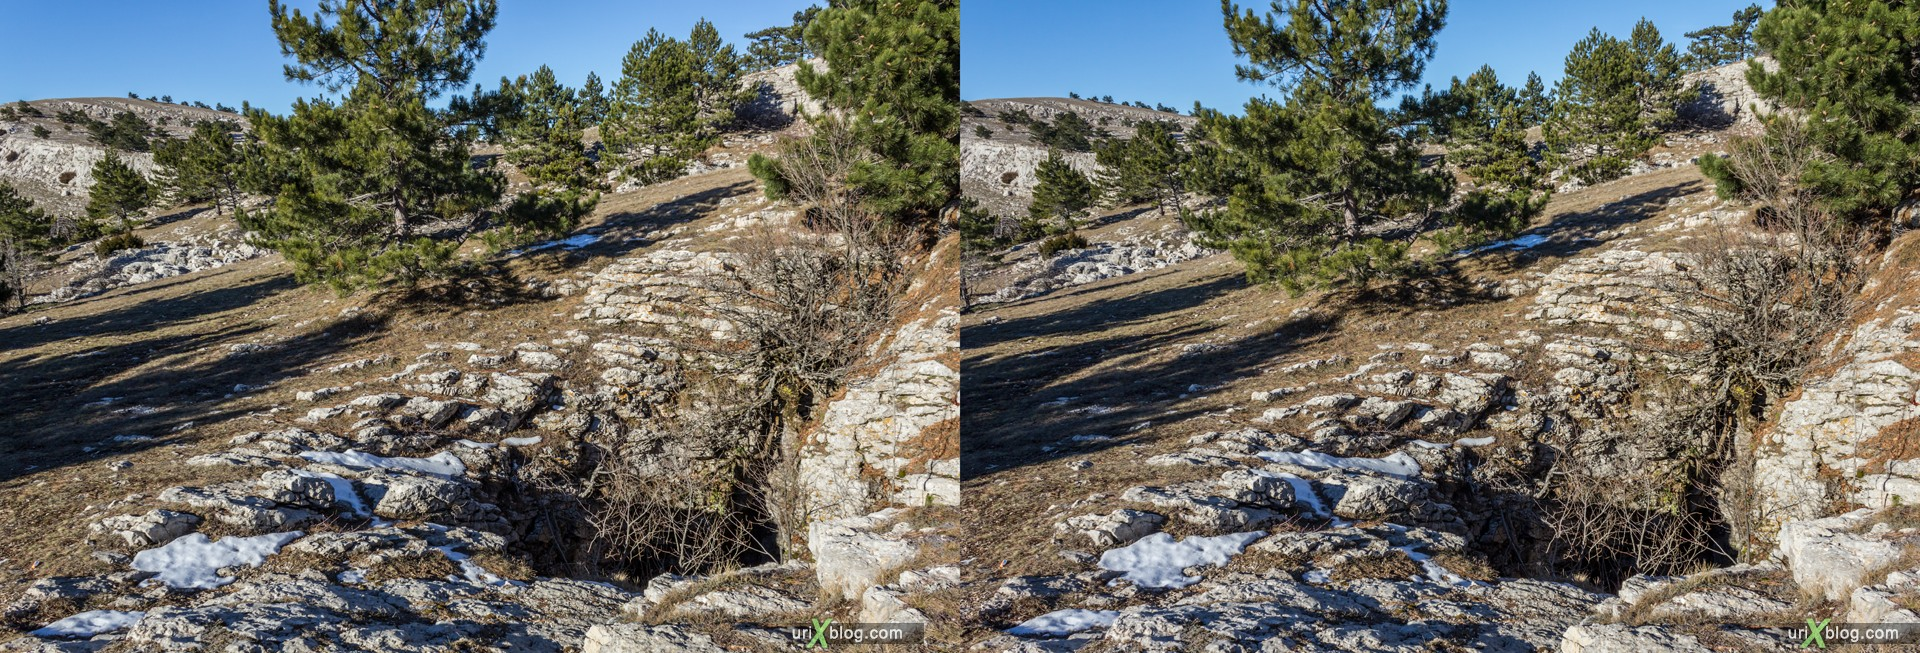 2012, Ai-Petri, mountains, Crimea, Russia, Ukraine, sky, clouds, snow, winter, 3D, stereo pair, cross-eyed, crossview, cross view stereo pair, stereoscopic